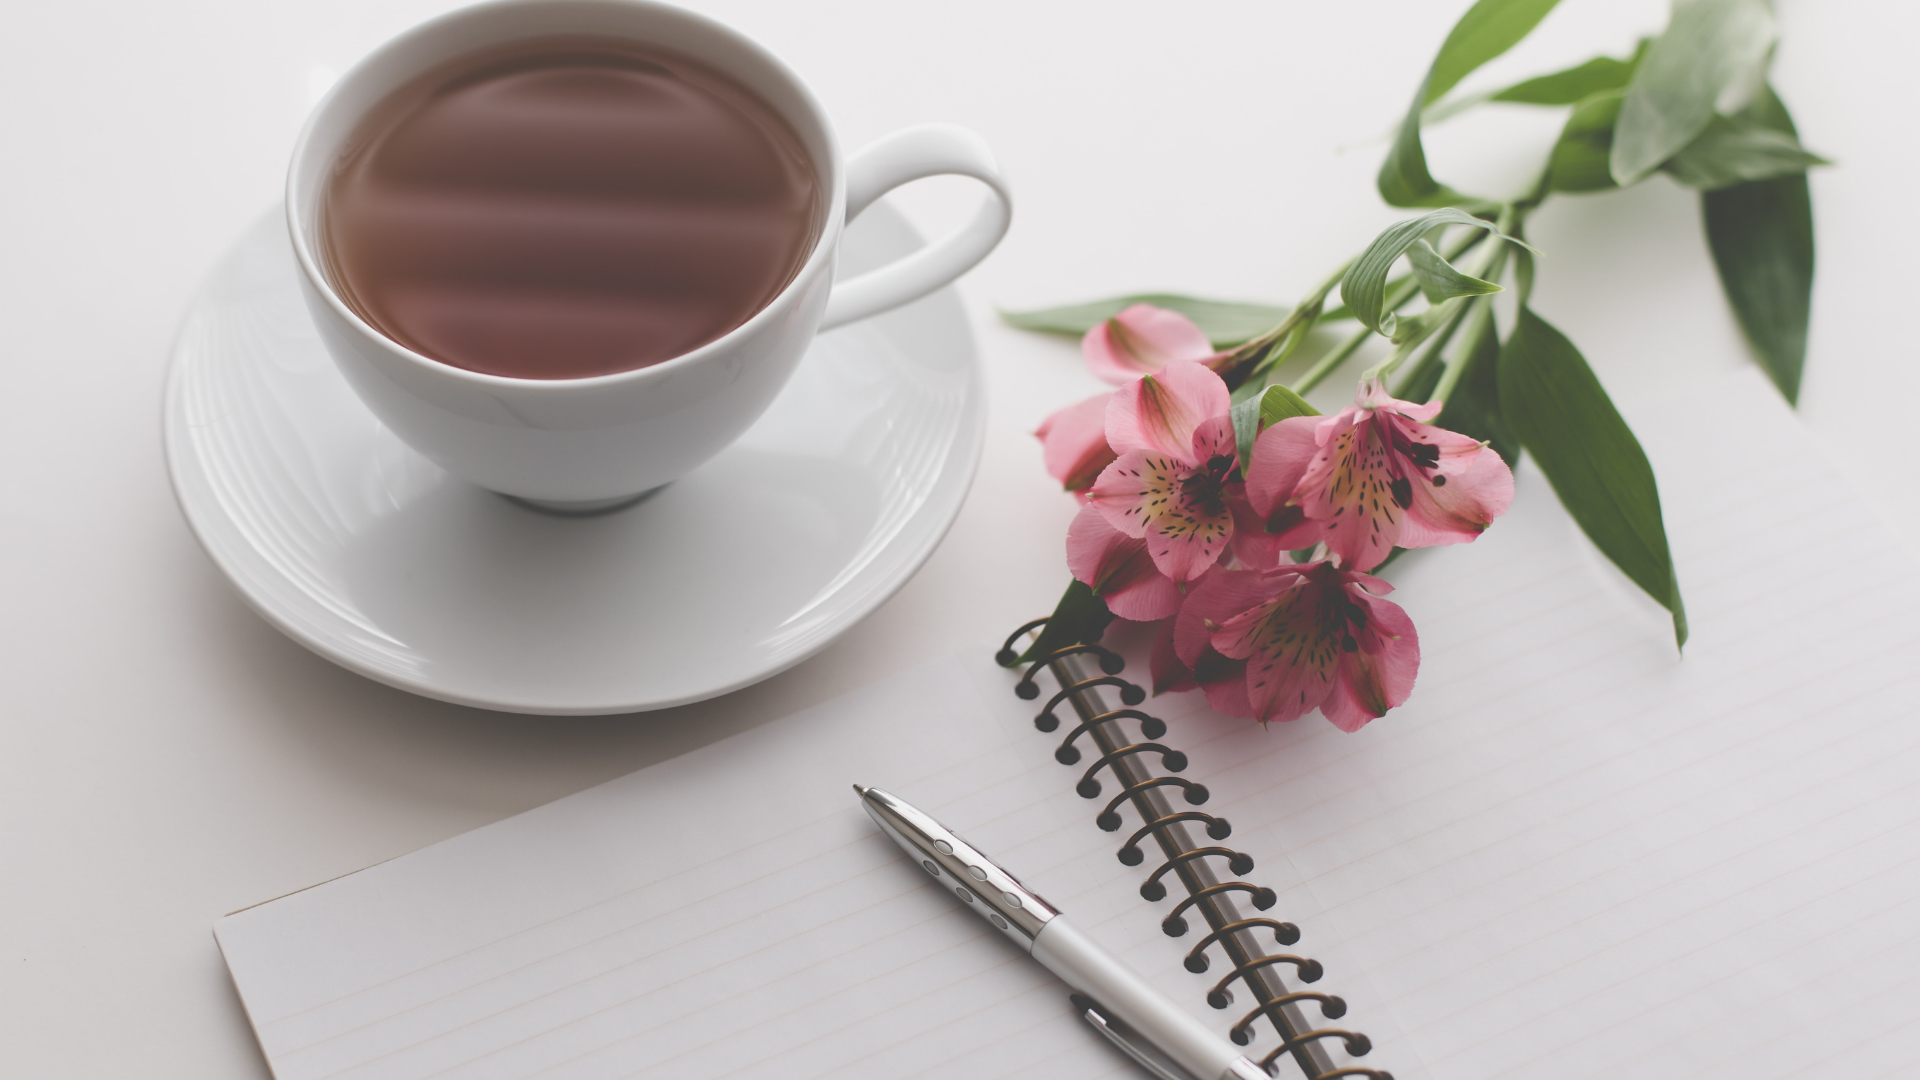 A photo of a desk with a notebook, pen and coffee.